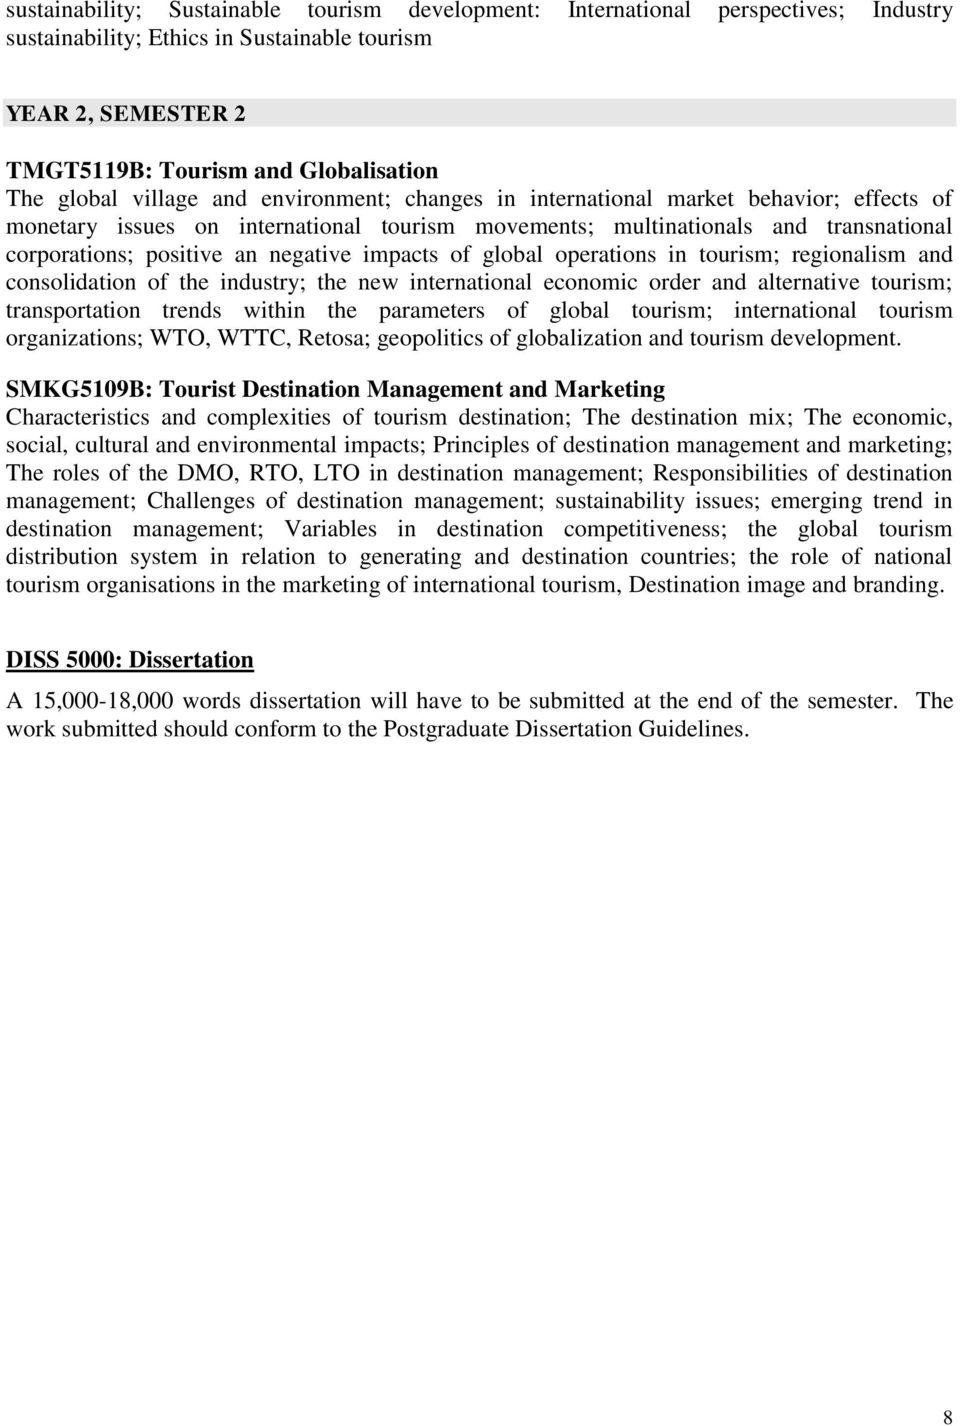 dissertation university of mauritius This document is intended as a standard guide for all theses presented for  research degrees  transfer report for upgrading to phd at the university of  mauritius.